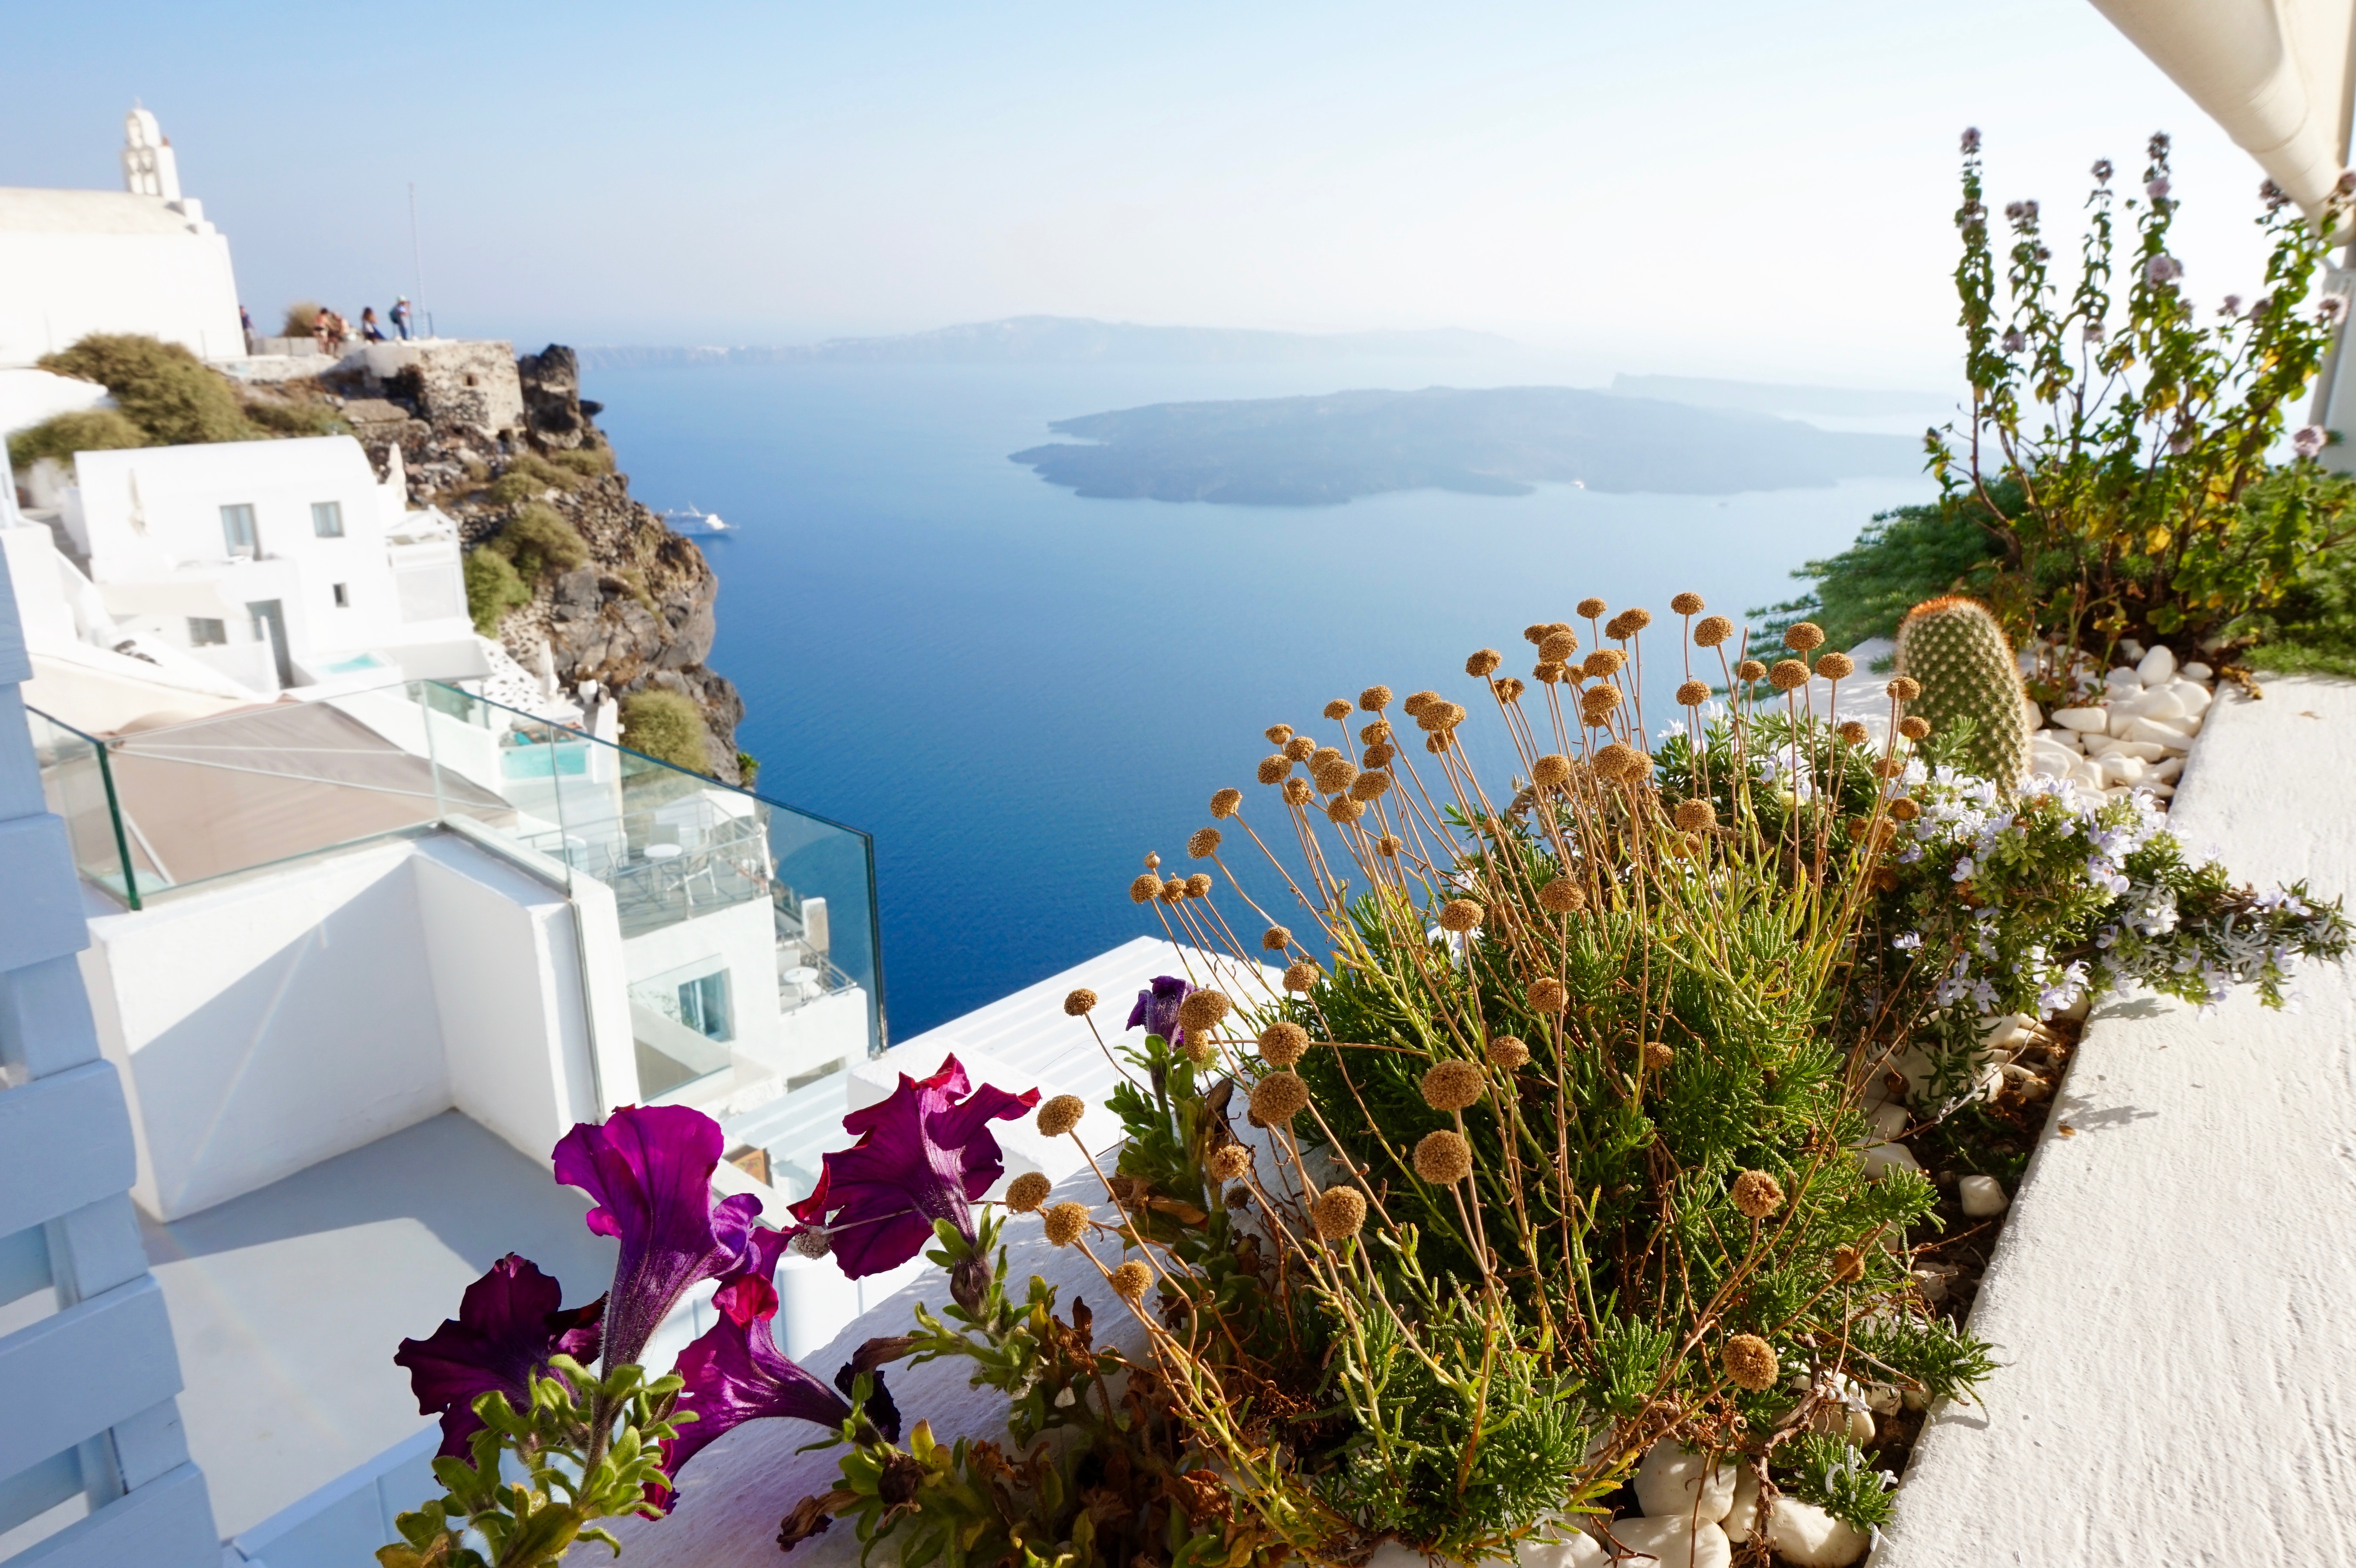 checked into spiliotica on the cliff santorini greece luxperience rh luxperiencewithjodie com